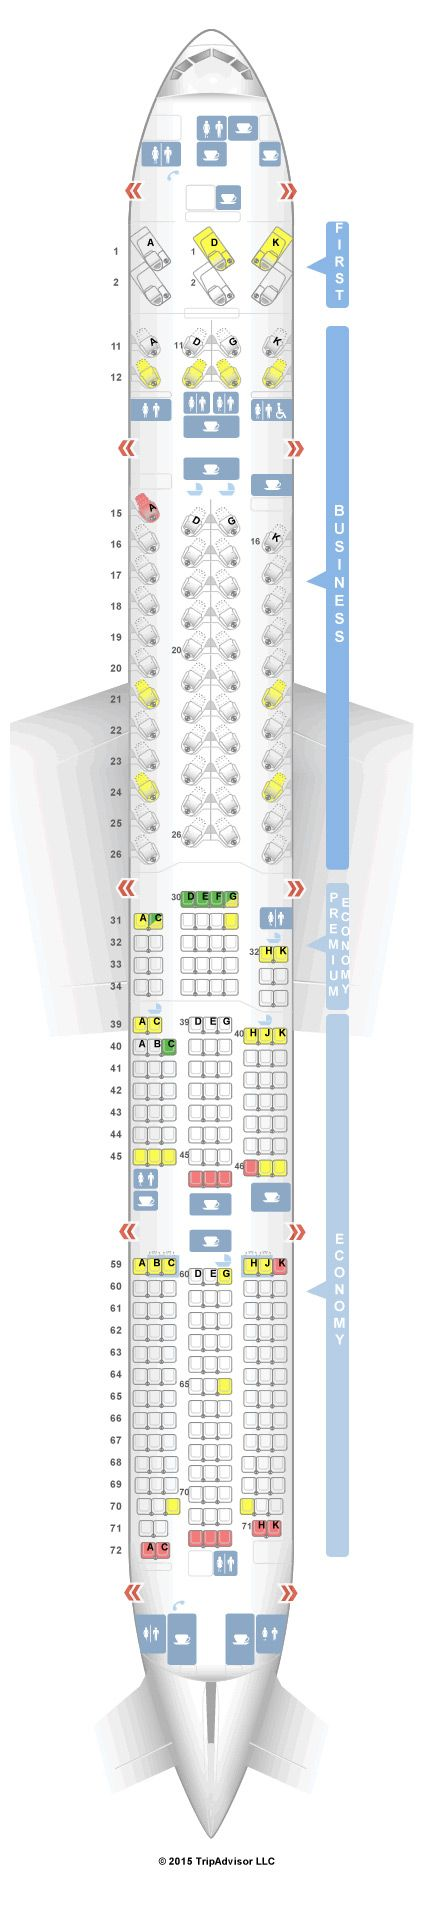 small resolution of seatguru seat map cathay pacific boeing 777 300er 77h four class